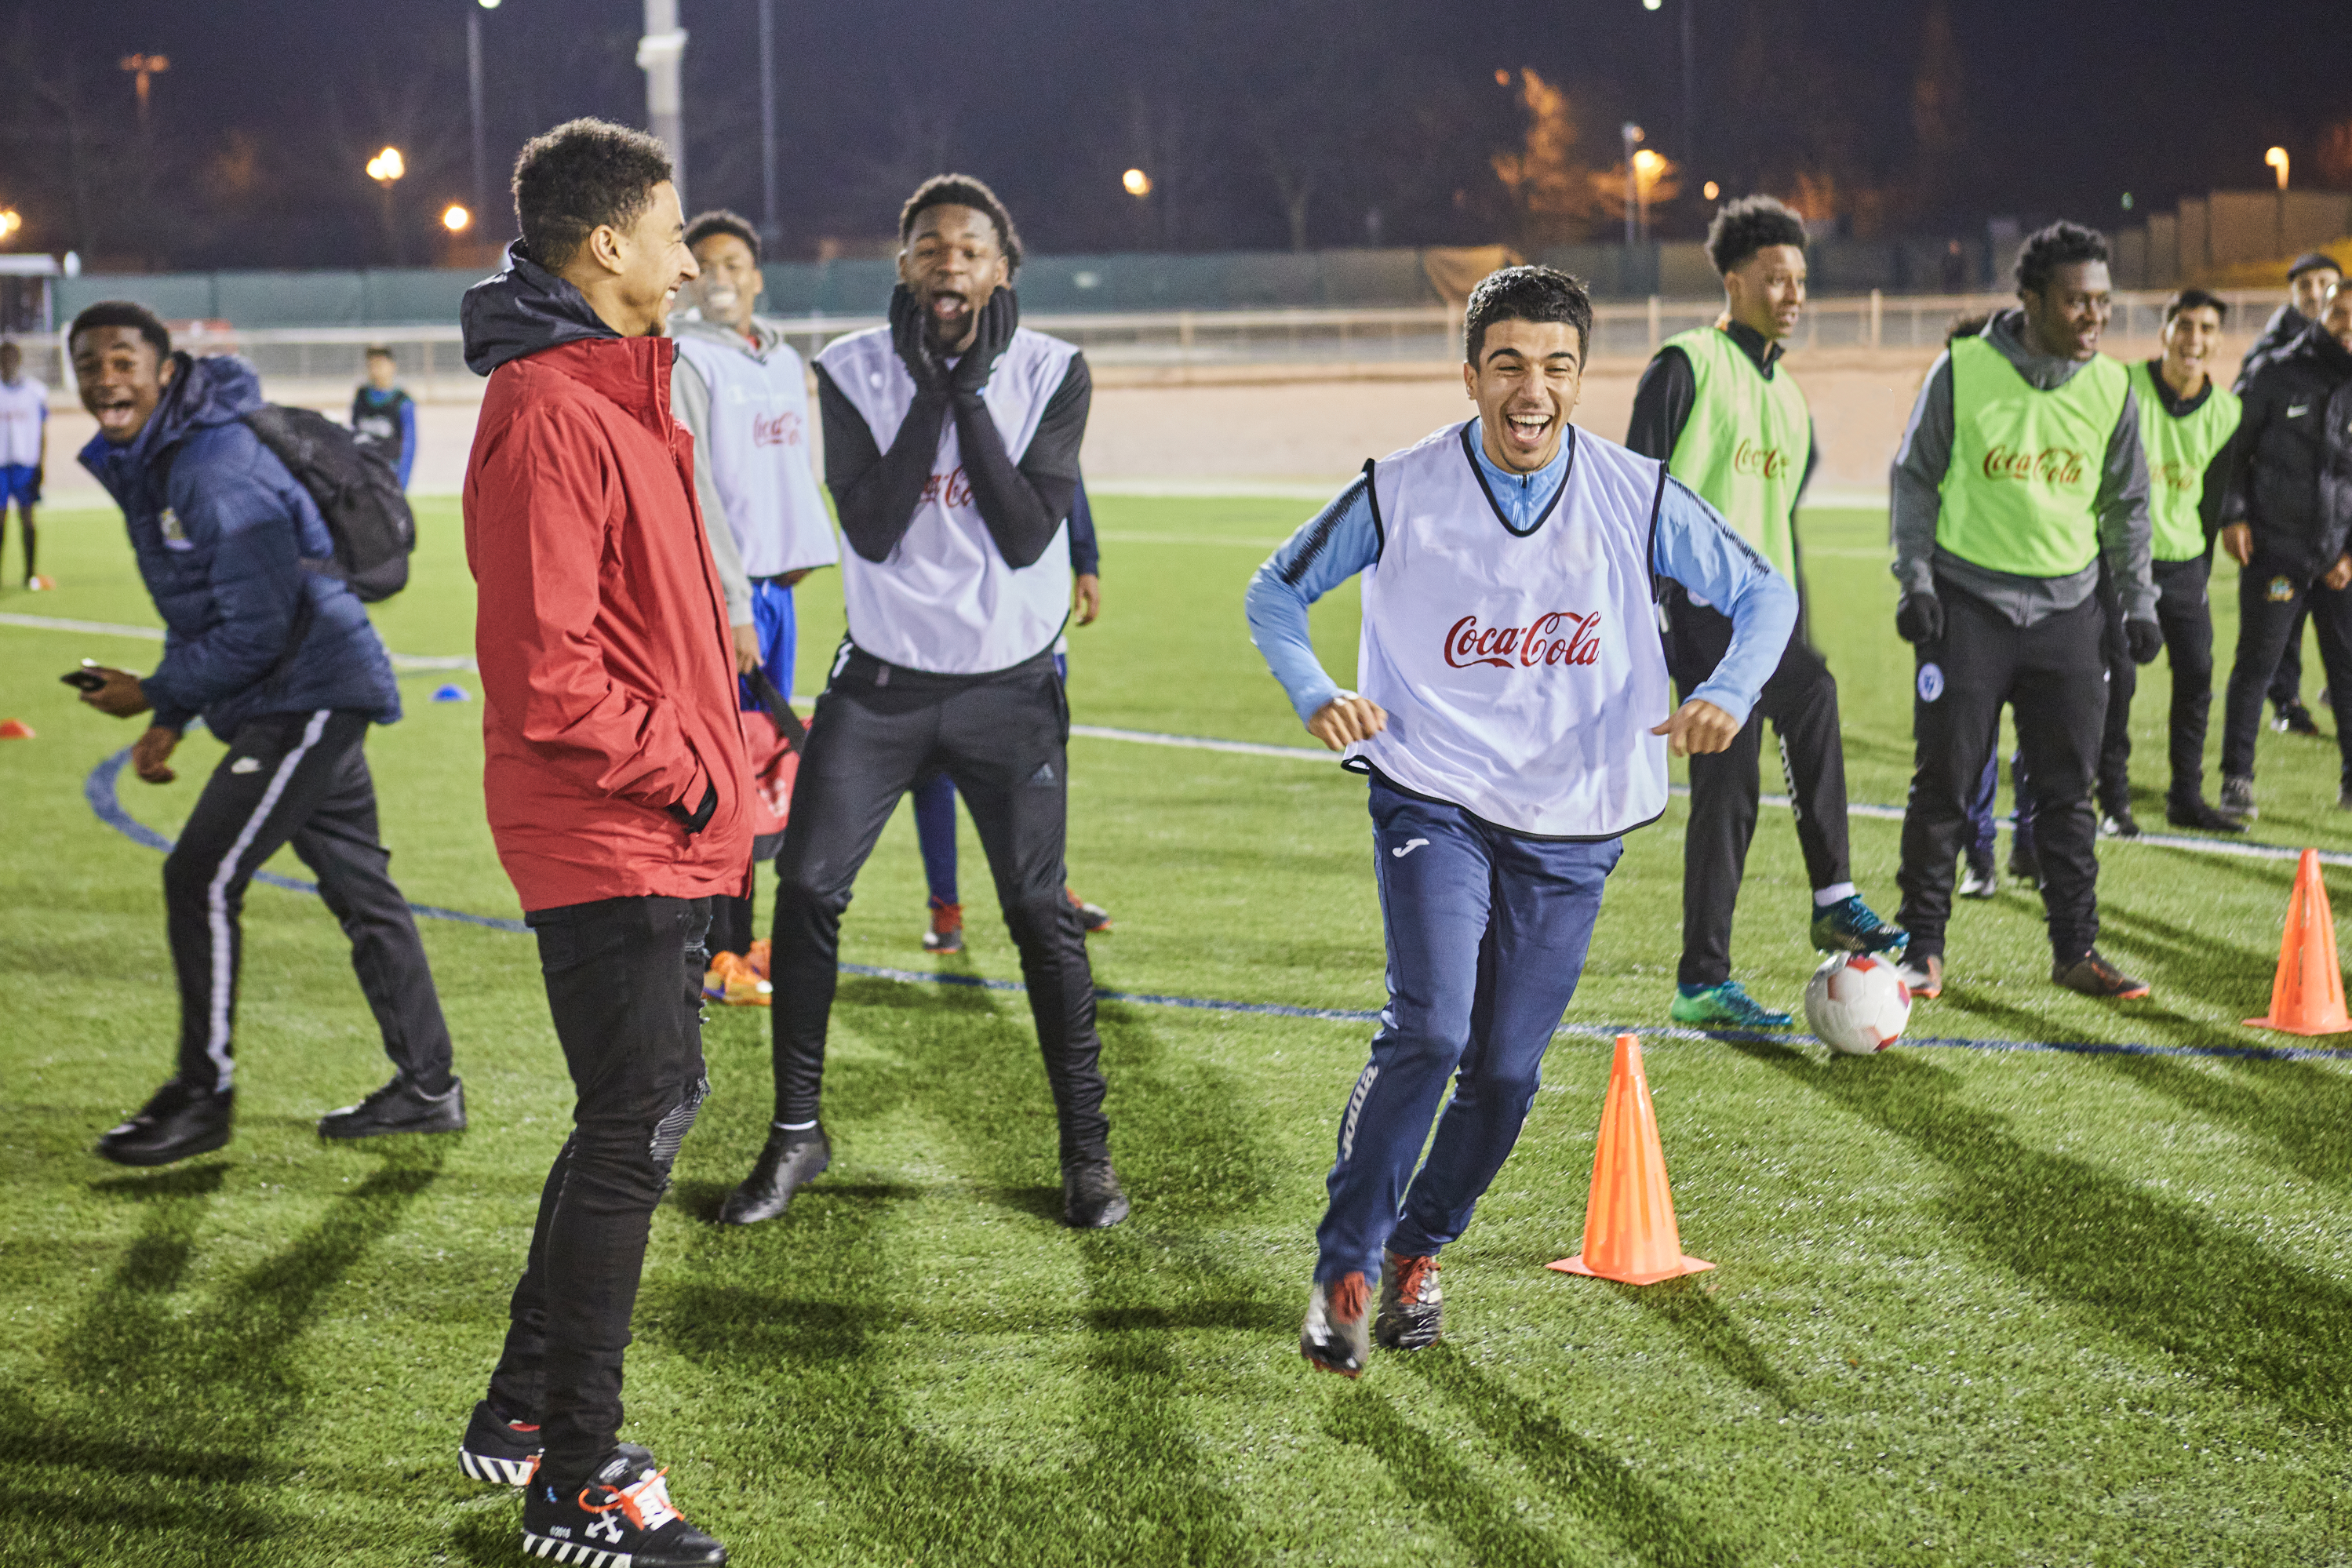 Coca-Cola ambassador Jesse Lingard takes part in a training session with StreetGames players in Manchester